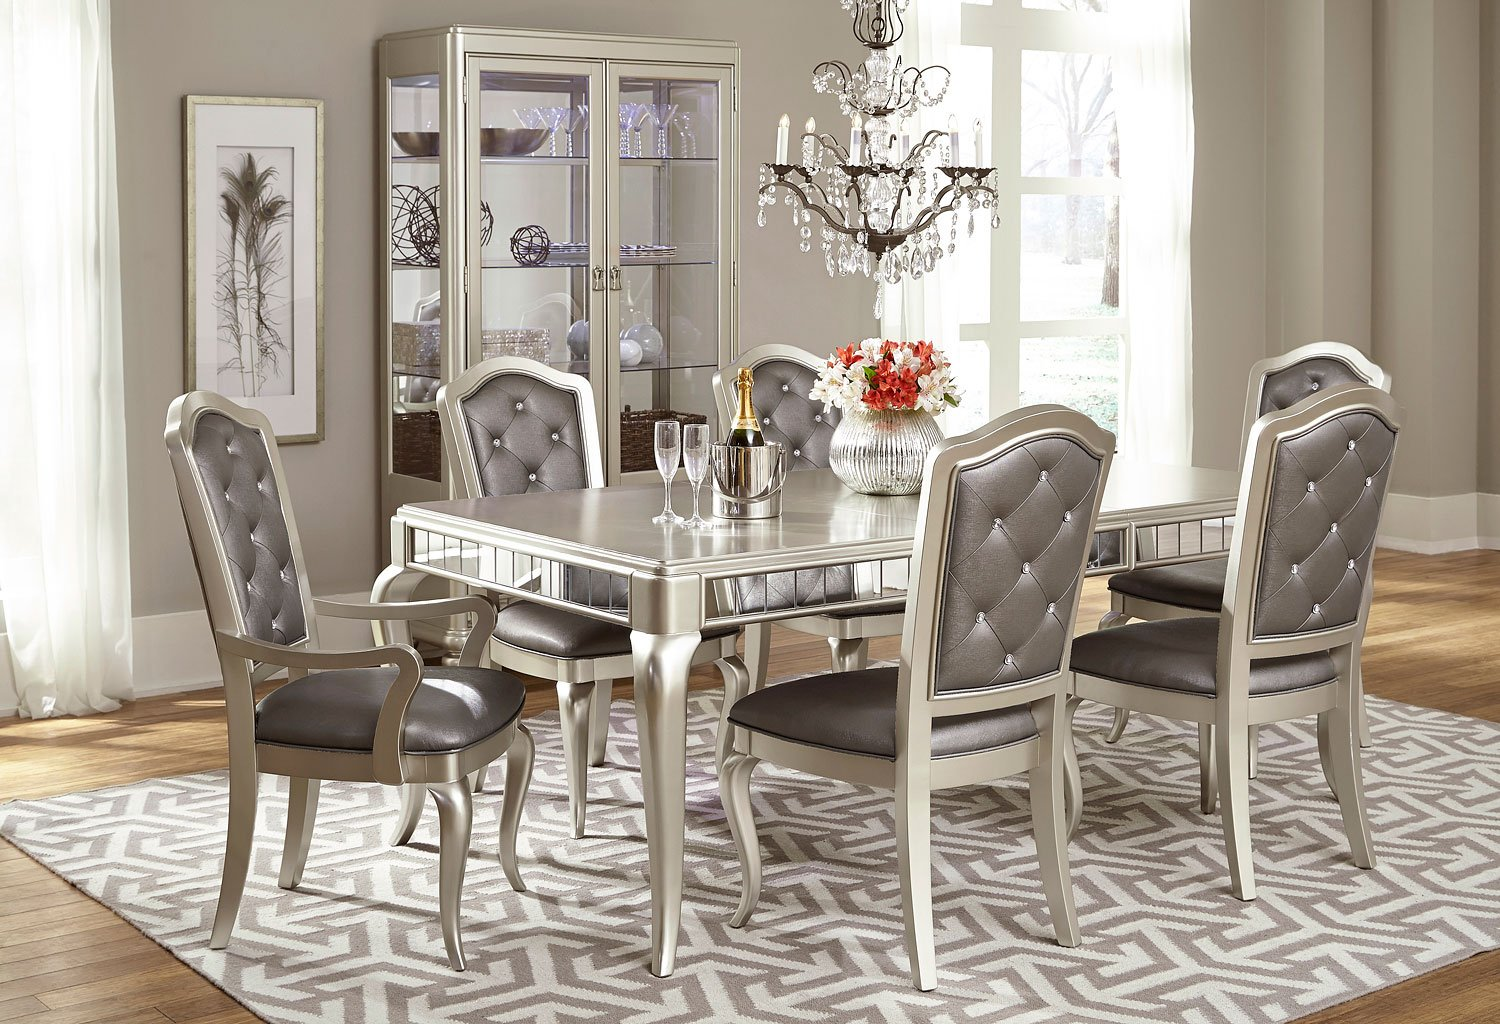 Diva Dining Room Set Samuel Lawrence Furniture, 2 Reviews